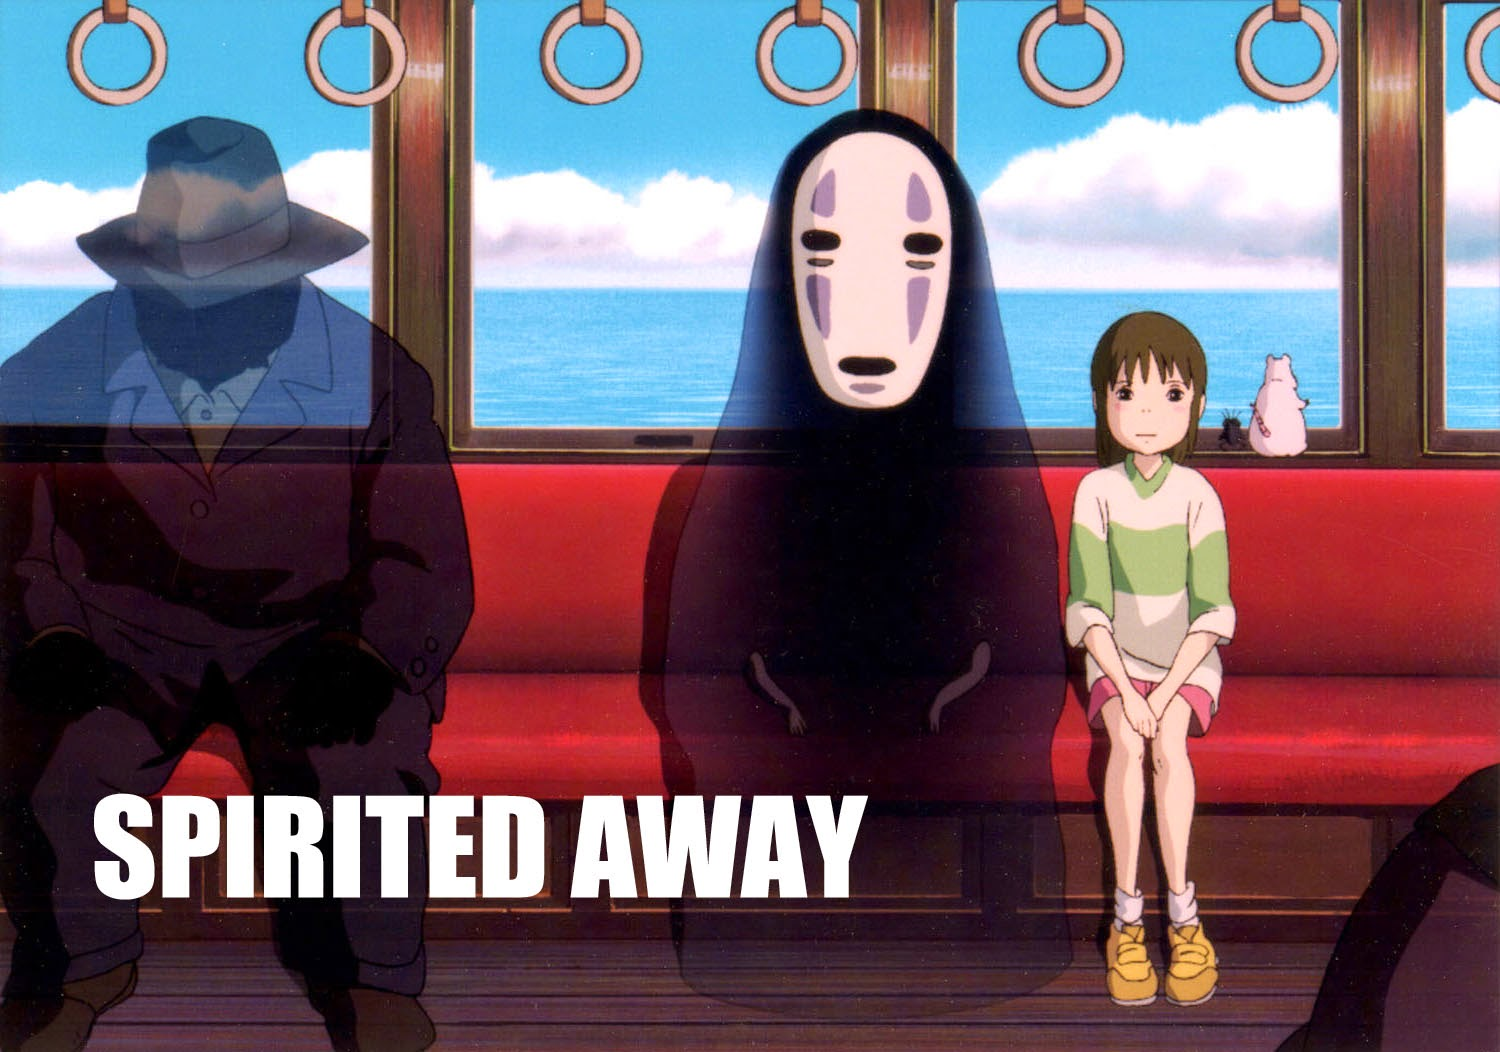 One Summer's Day Spirited Away